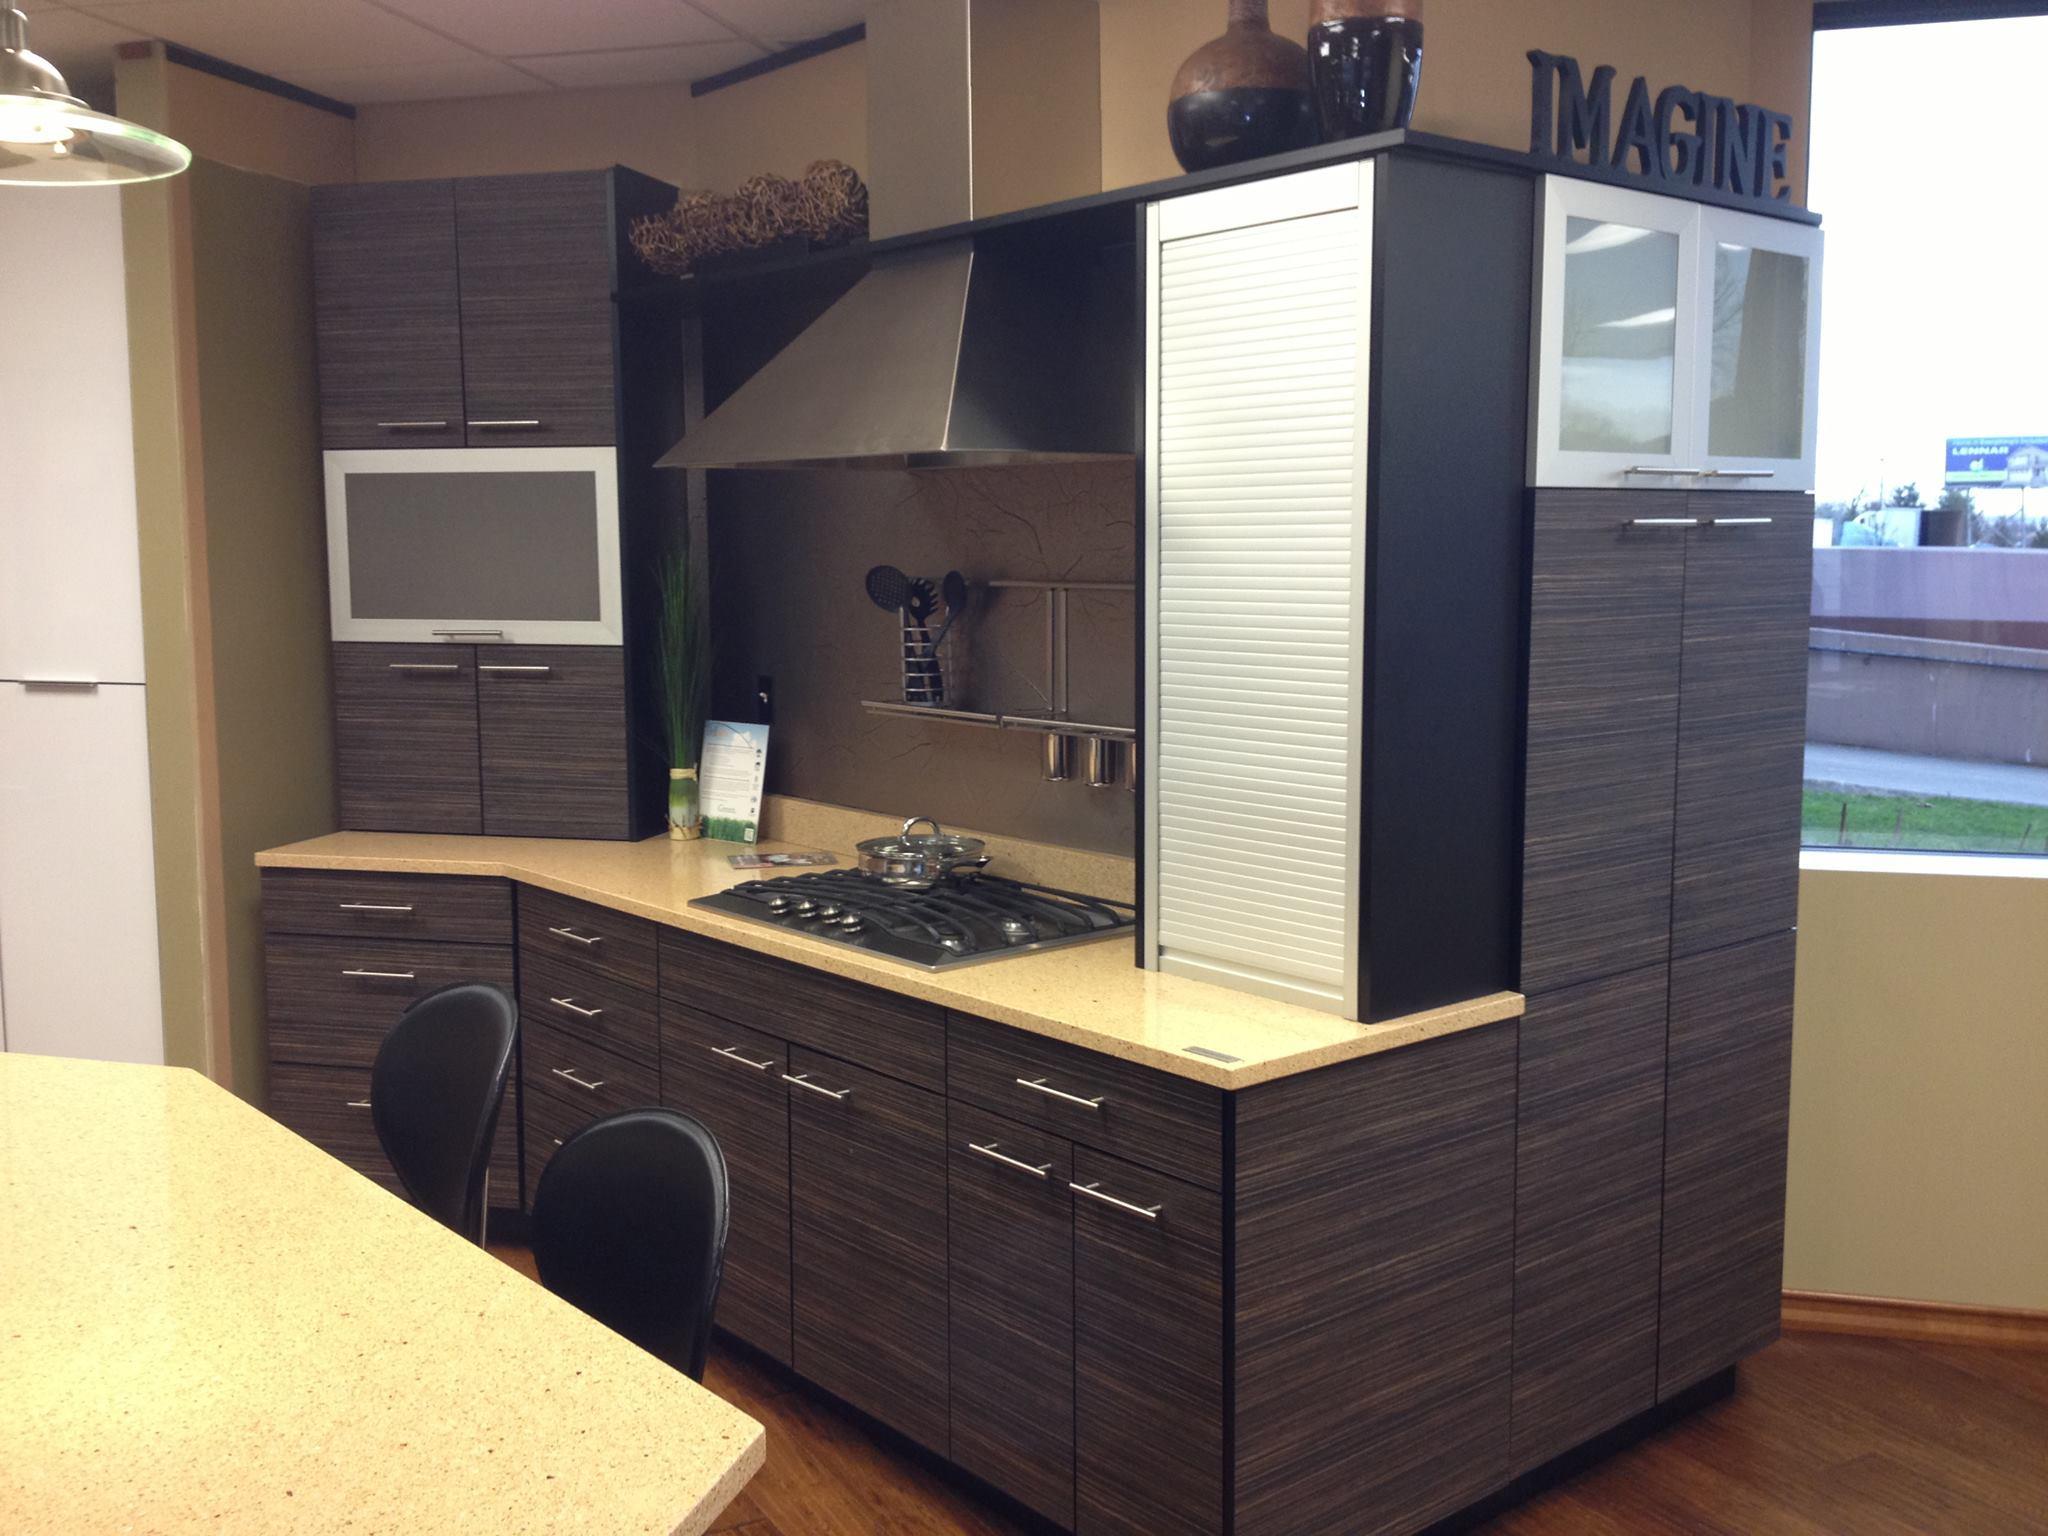 Kitchen Cabi  Parts Terminology additionally Snake Design Jewelry together with 333688653614368792 in addition Index in addition Gallery. on kitchen cabinets